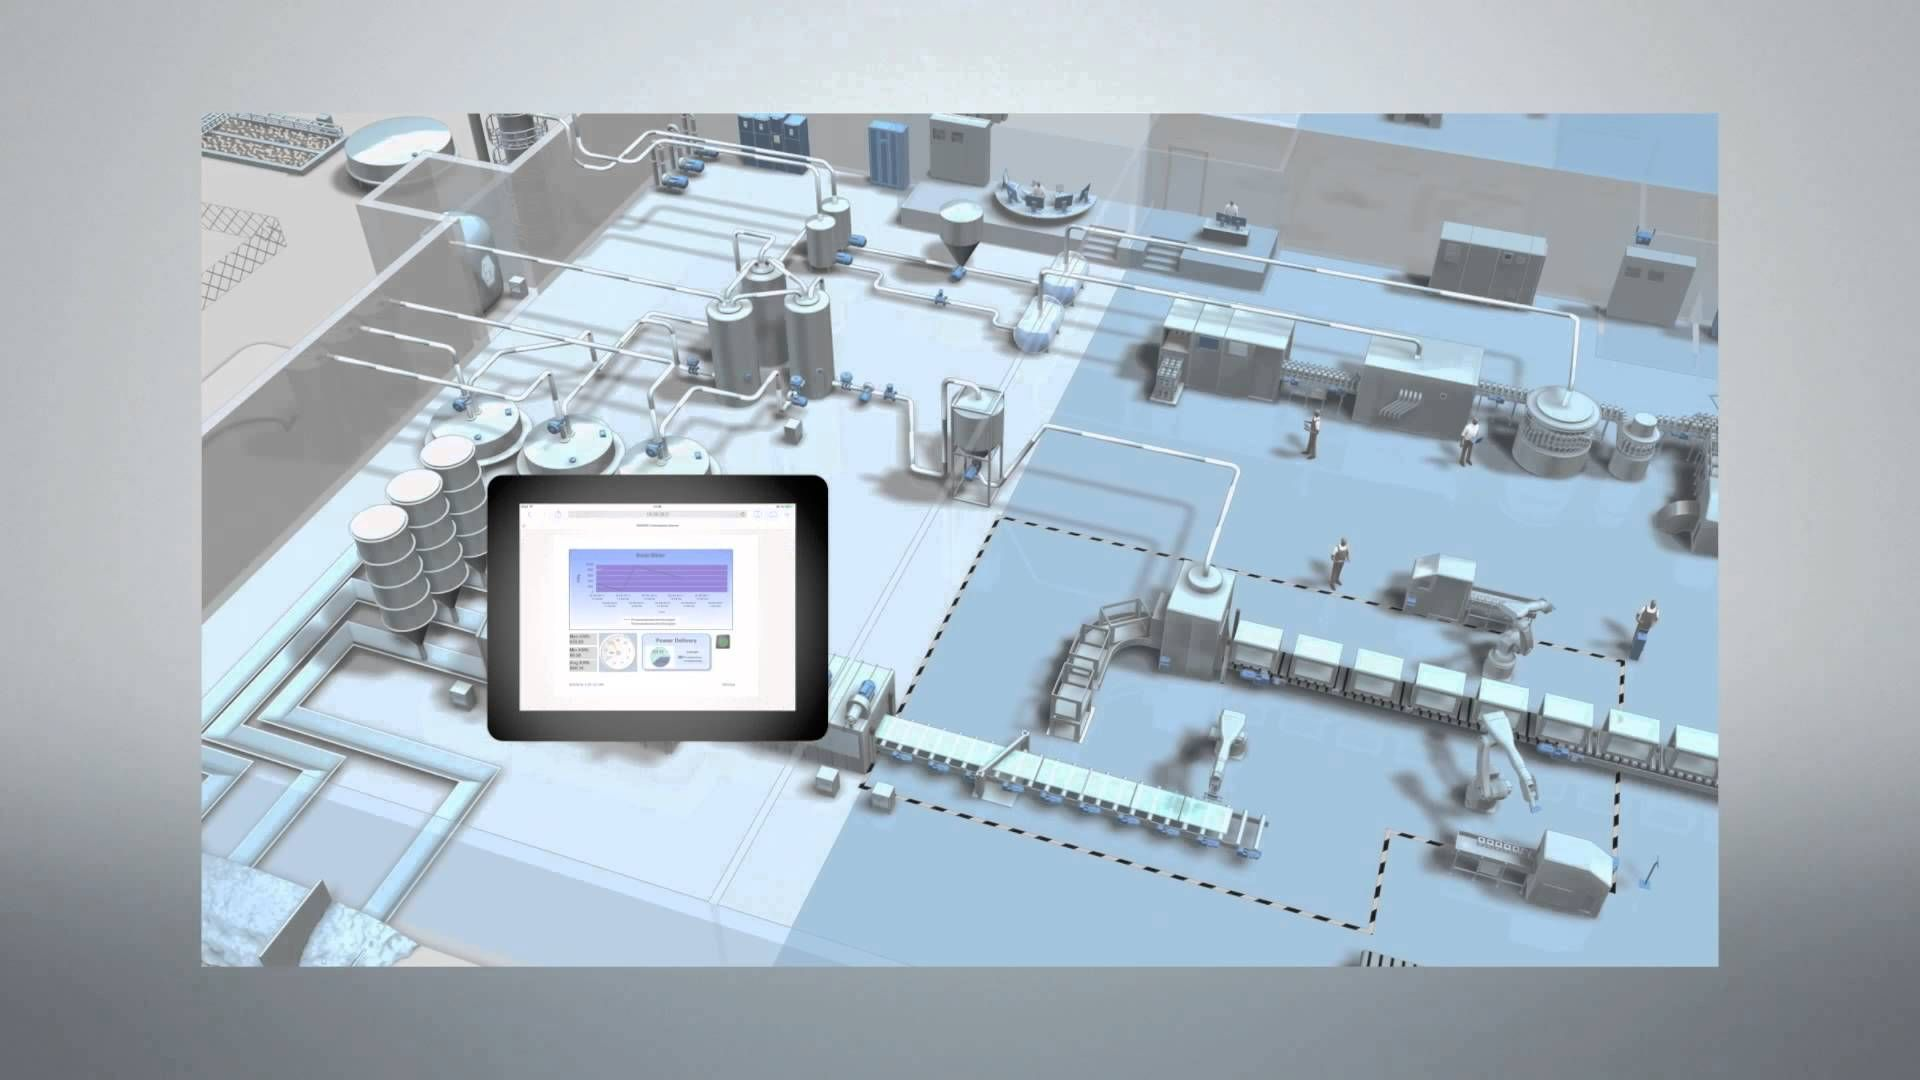 The scalable and open SCADA system for maximum plant transparency